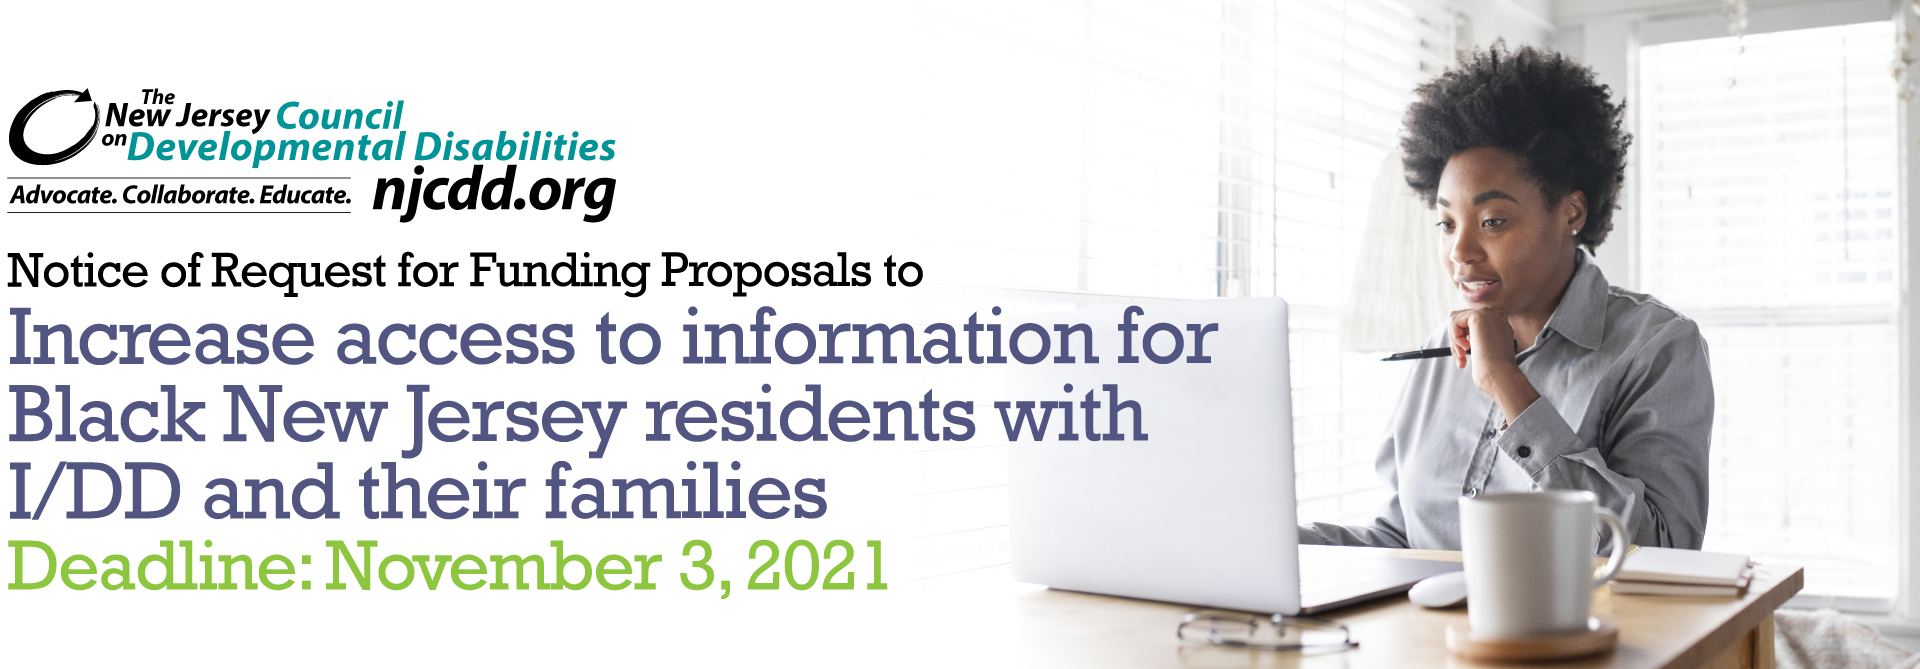 Notice-of-RFP-to-Increase-access-to-information-for-Black-NJ-residents-with-IDD-and-their-families-pagebanner2